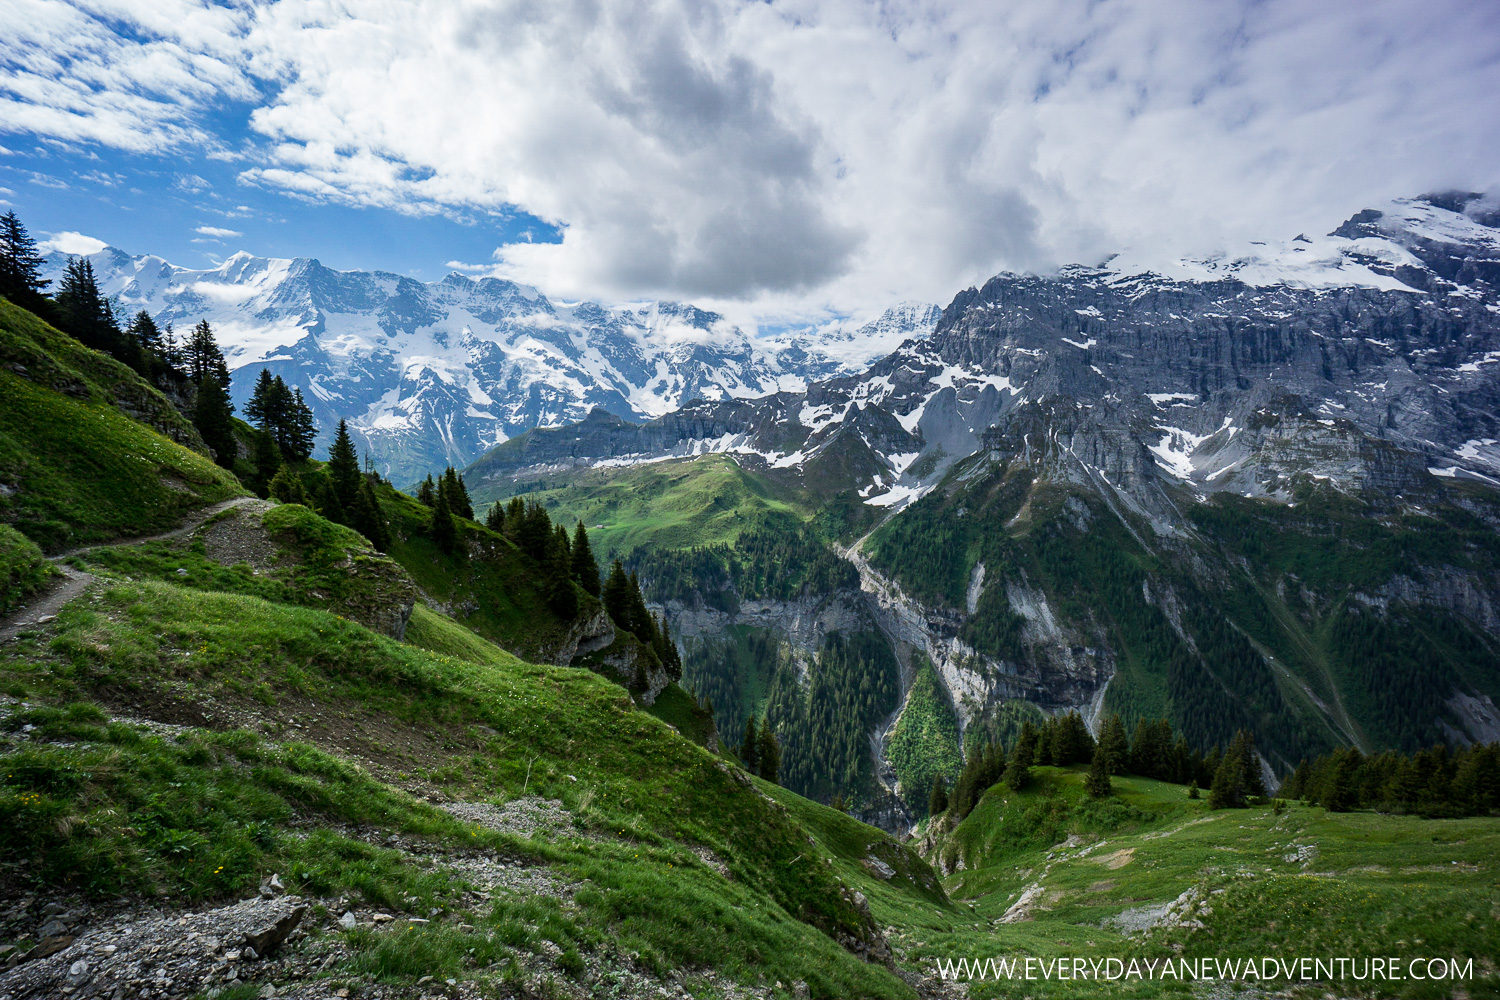 [SqSp1500-078] The Rough-hewn Mountains of Gimmelwald.jpg